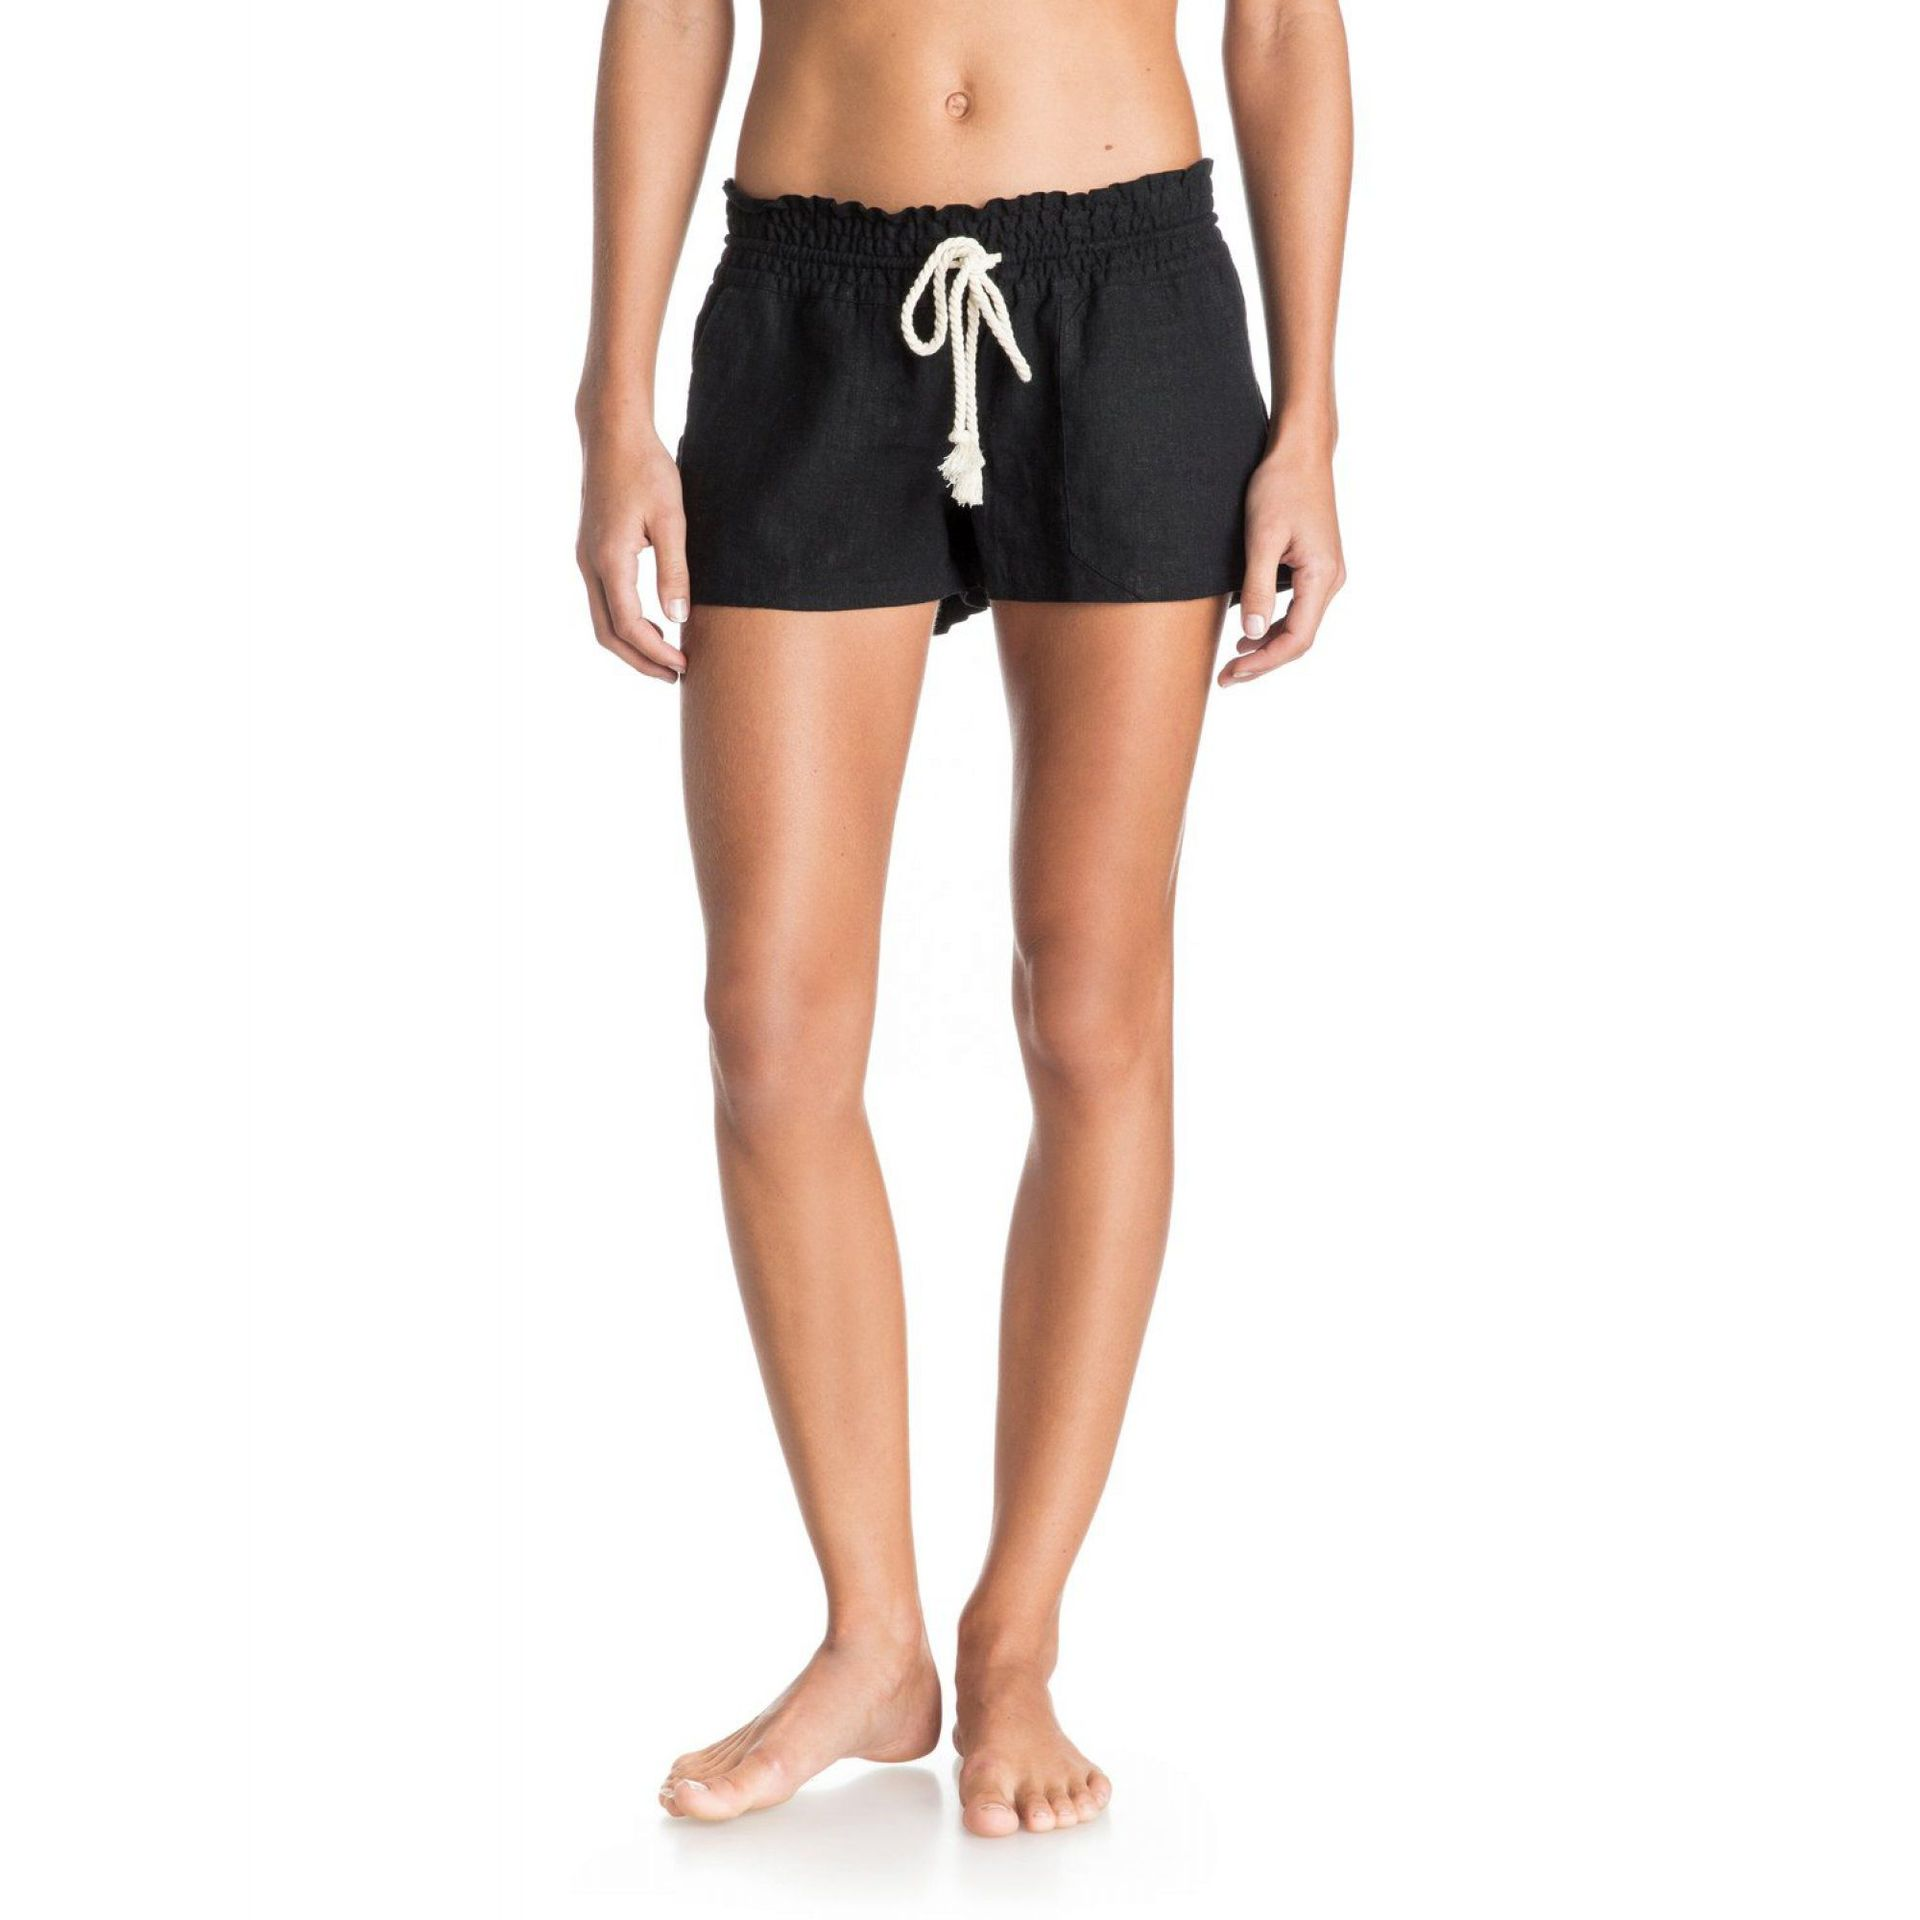 SPODENKI ROXY OCEANSIDE SHORT KVJ0 1